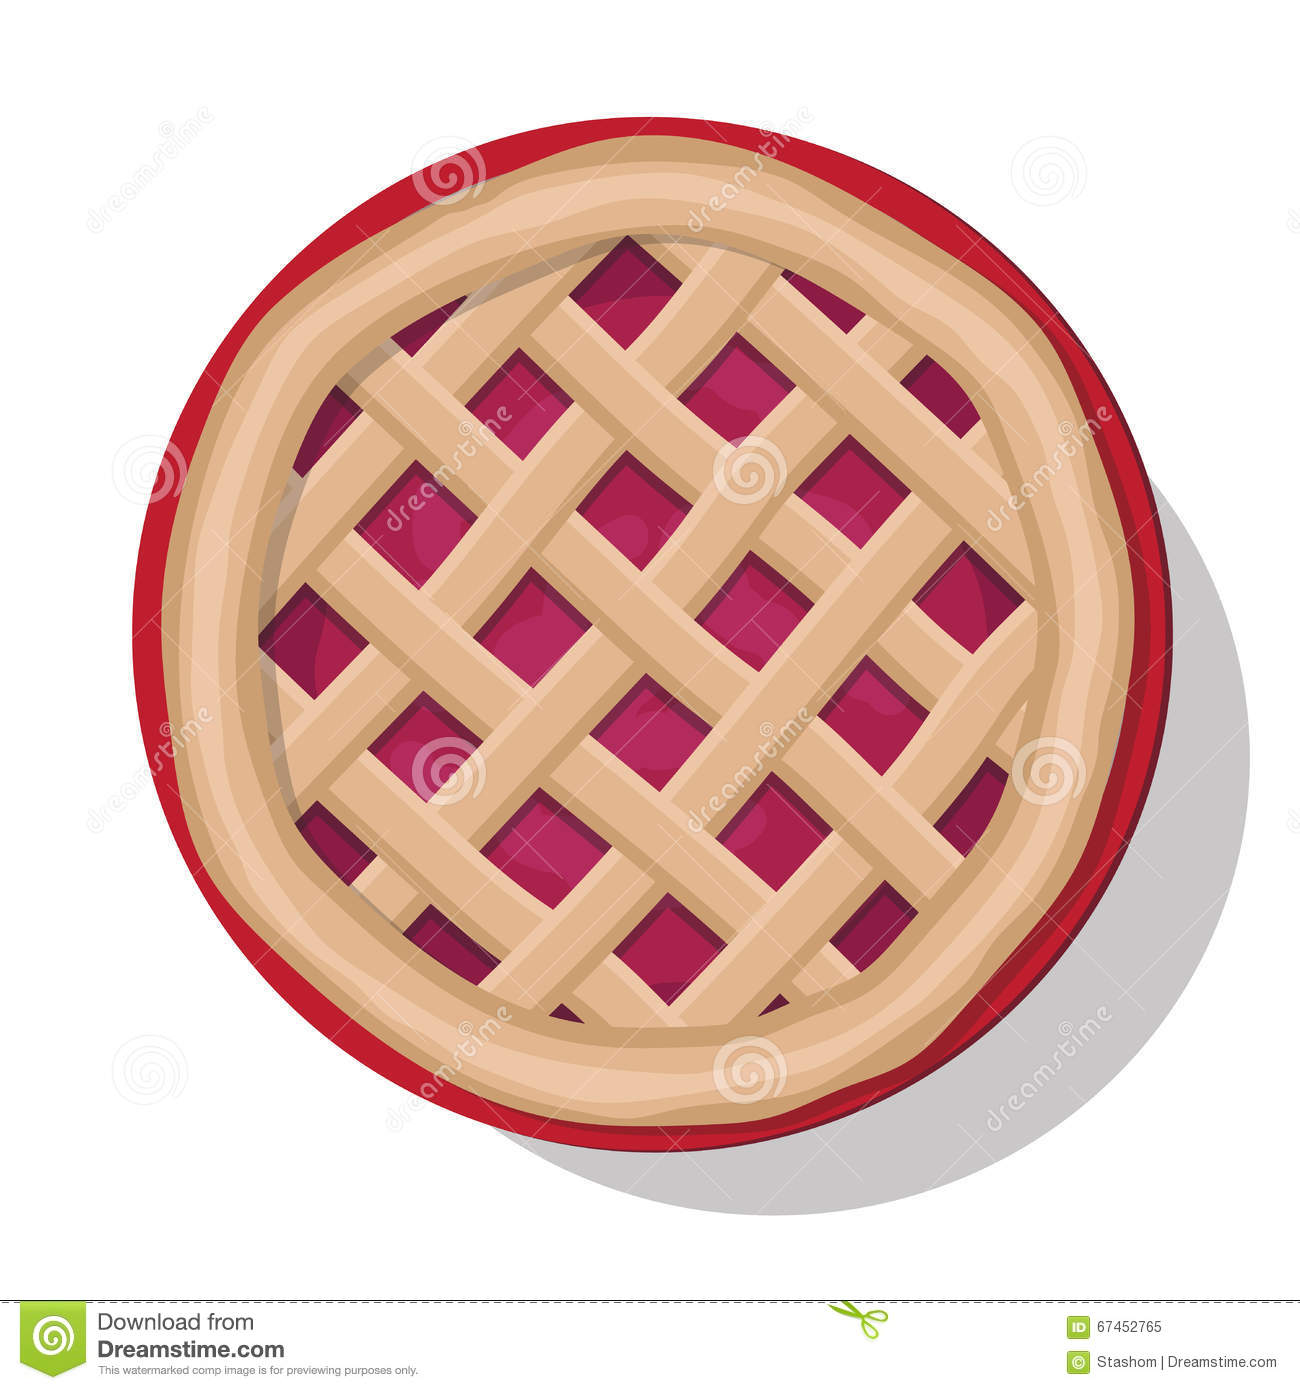 Cake Clipart Top View : Apple Pie Vector Illustration. Stock Vector - Image: 67452765